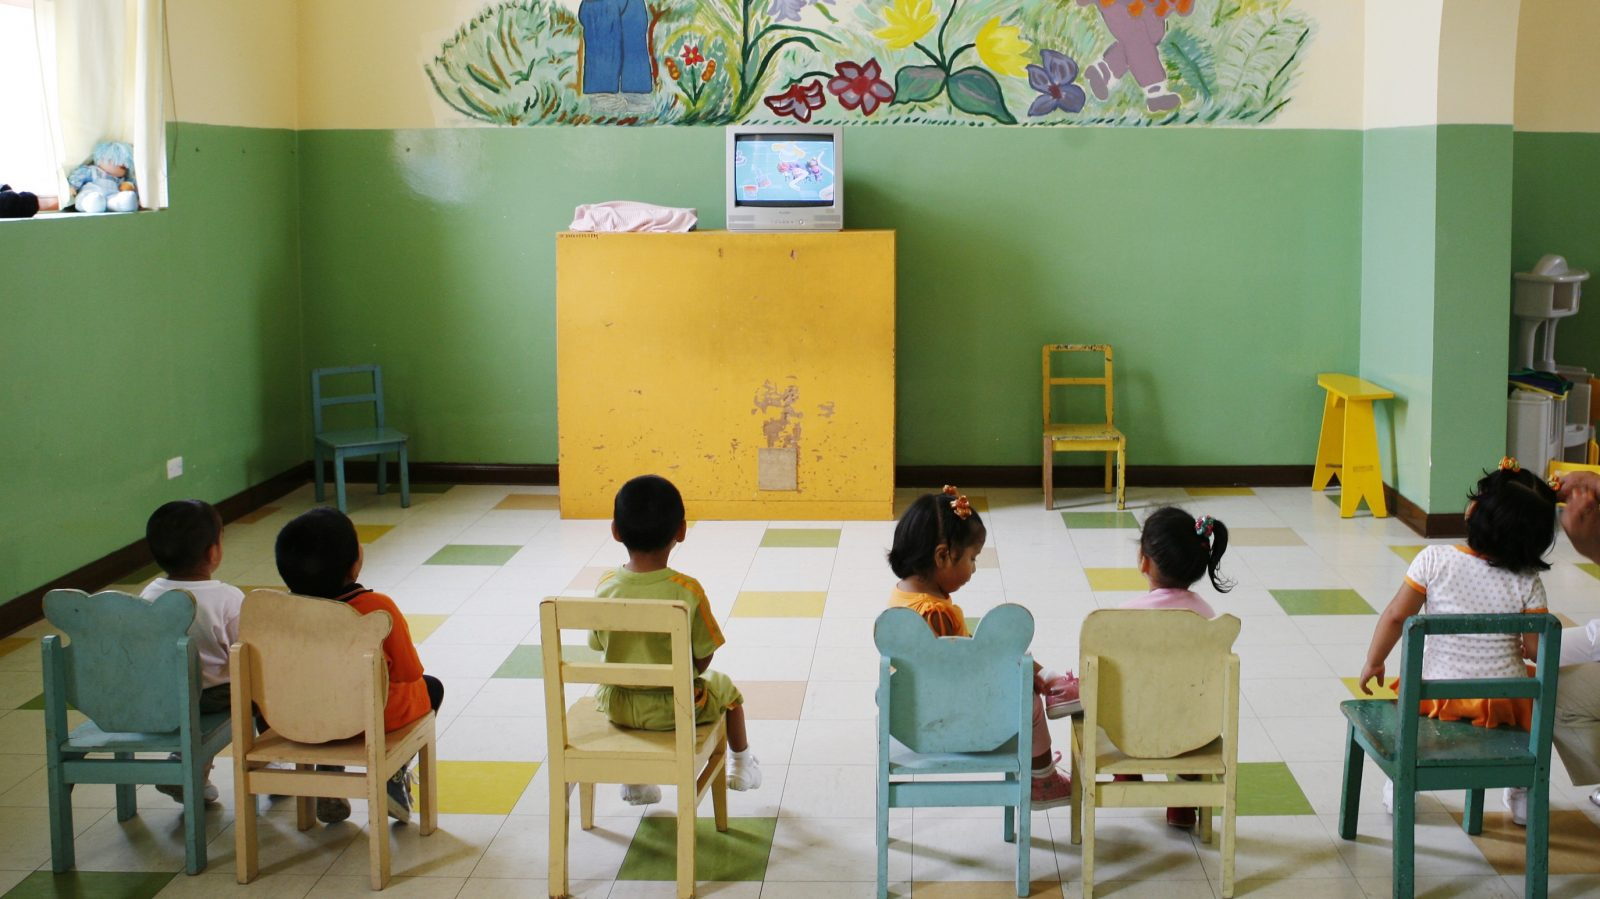 Children watch television at the Puericultorio Perez Aranibar children's home in Lima March 9, 2012. The home, the biggest of its kind in Peru with 82 years of history, provides a shelter for more than 400 children who are abandoned, orphaned, homeless or in dire need. REUTERS/Enrique Castro-Mendivil (PERU - Tags: SOCIETY) - RTR2Z4GO